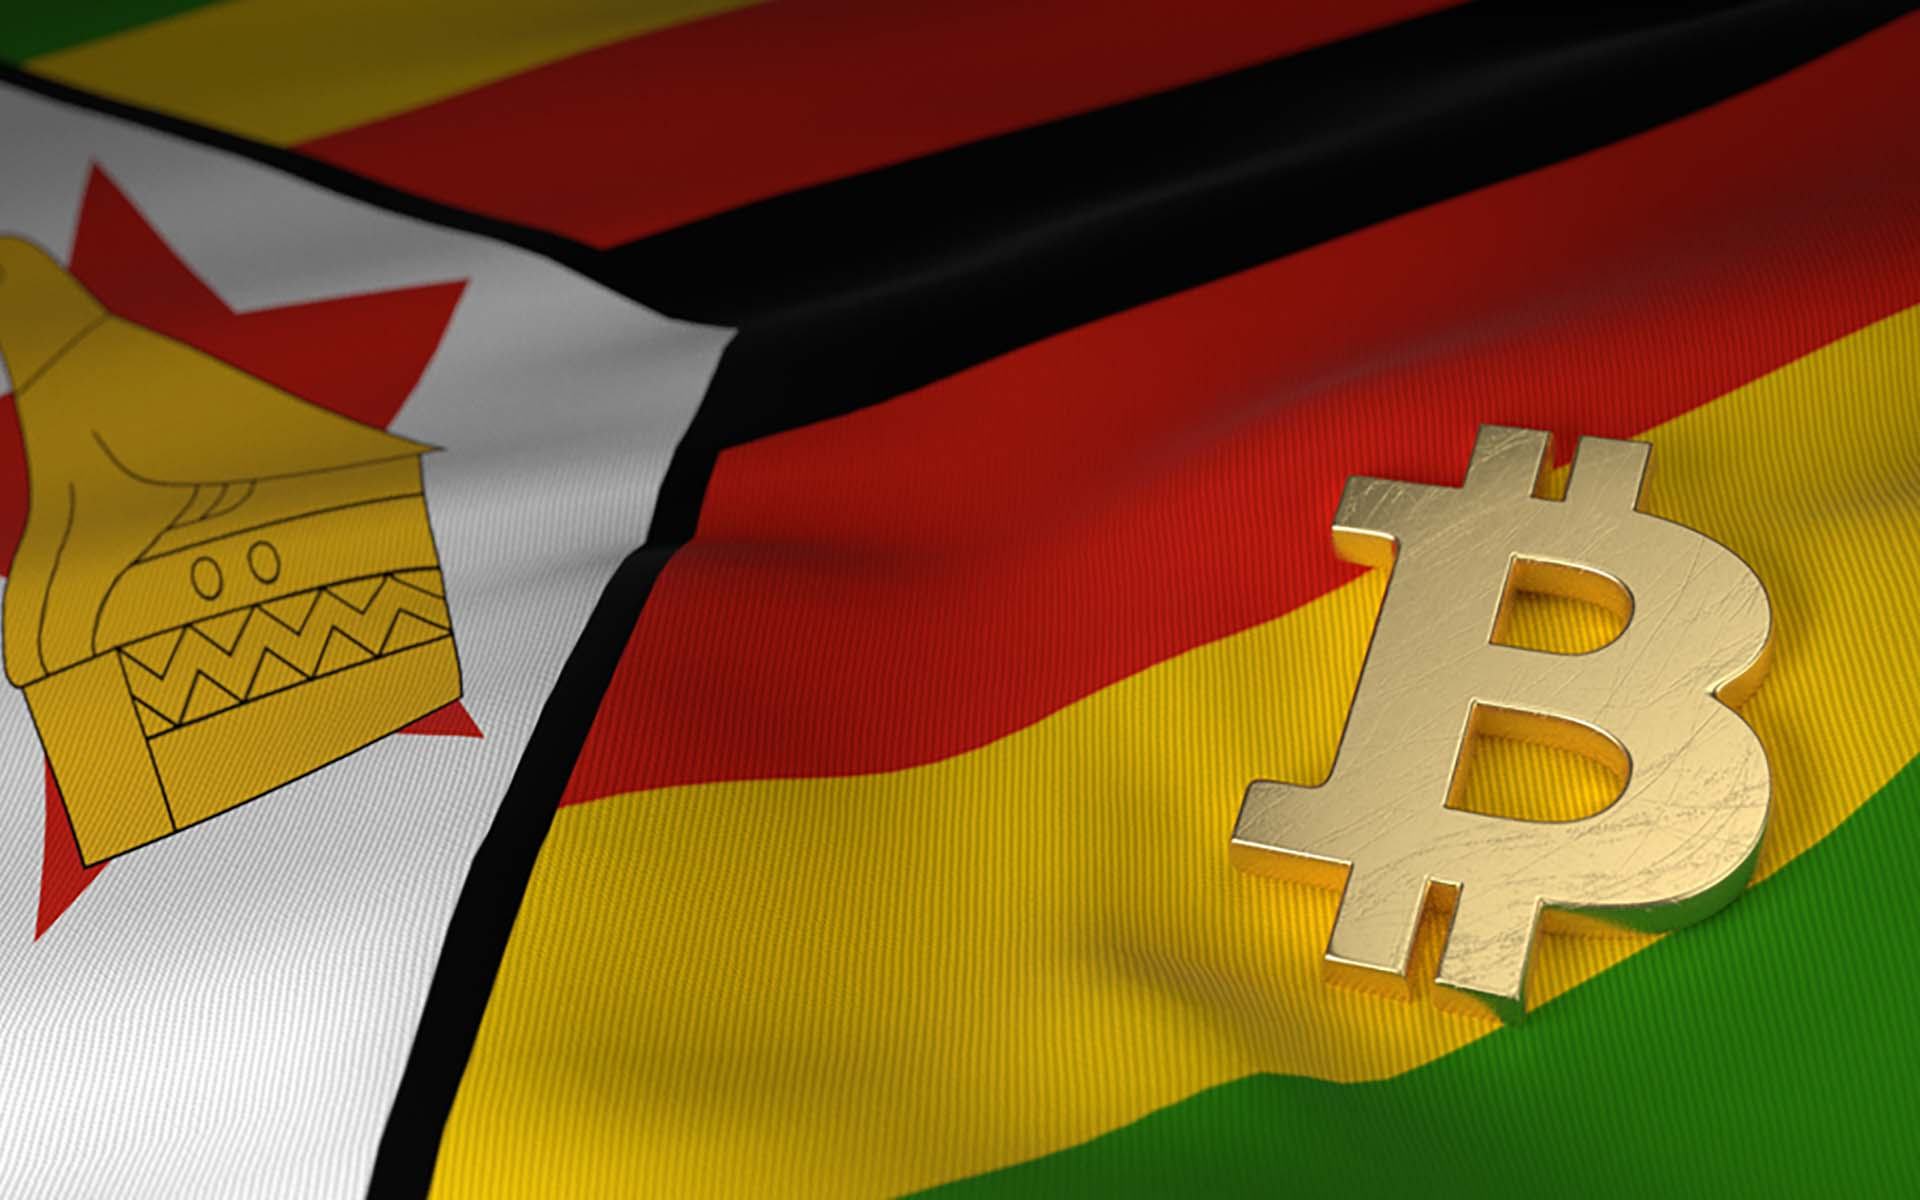 Bitcoin Price at $12,400 In Zimbabwe Amidst Immense Cash Crunch